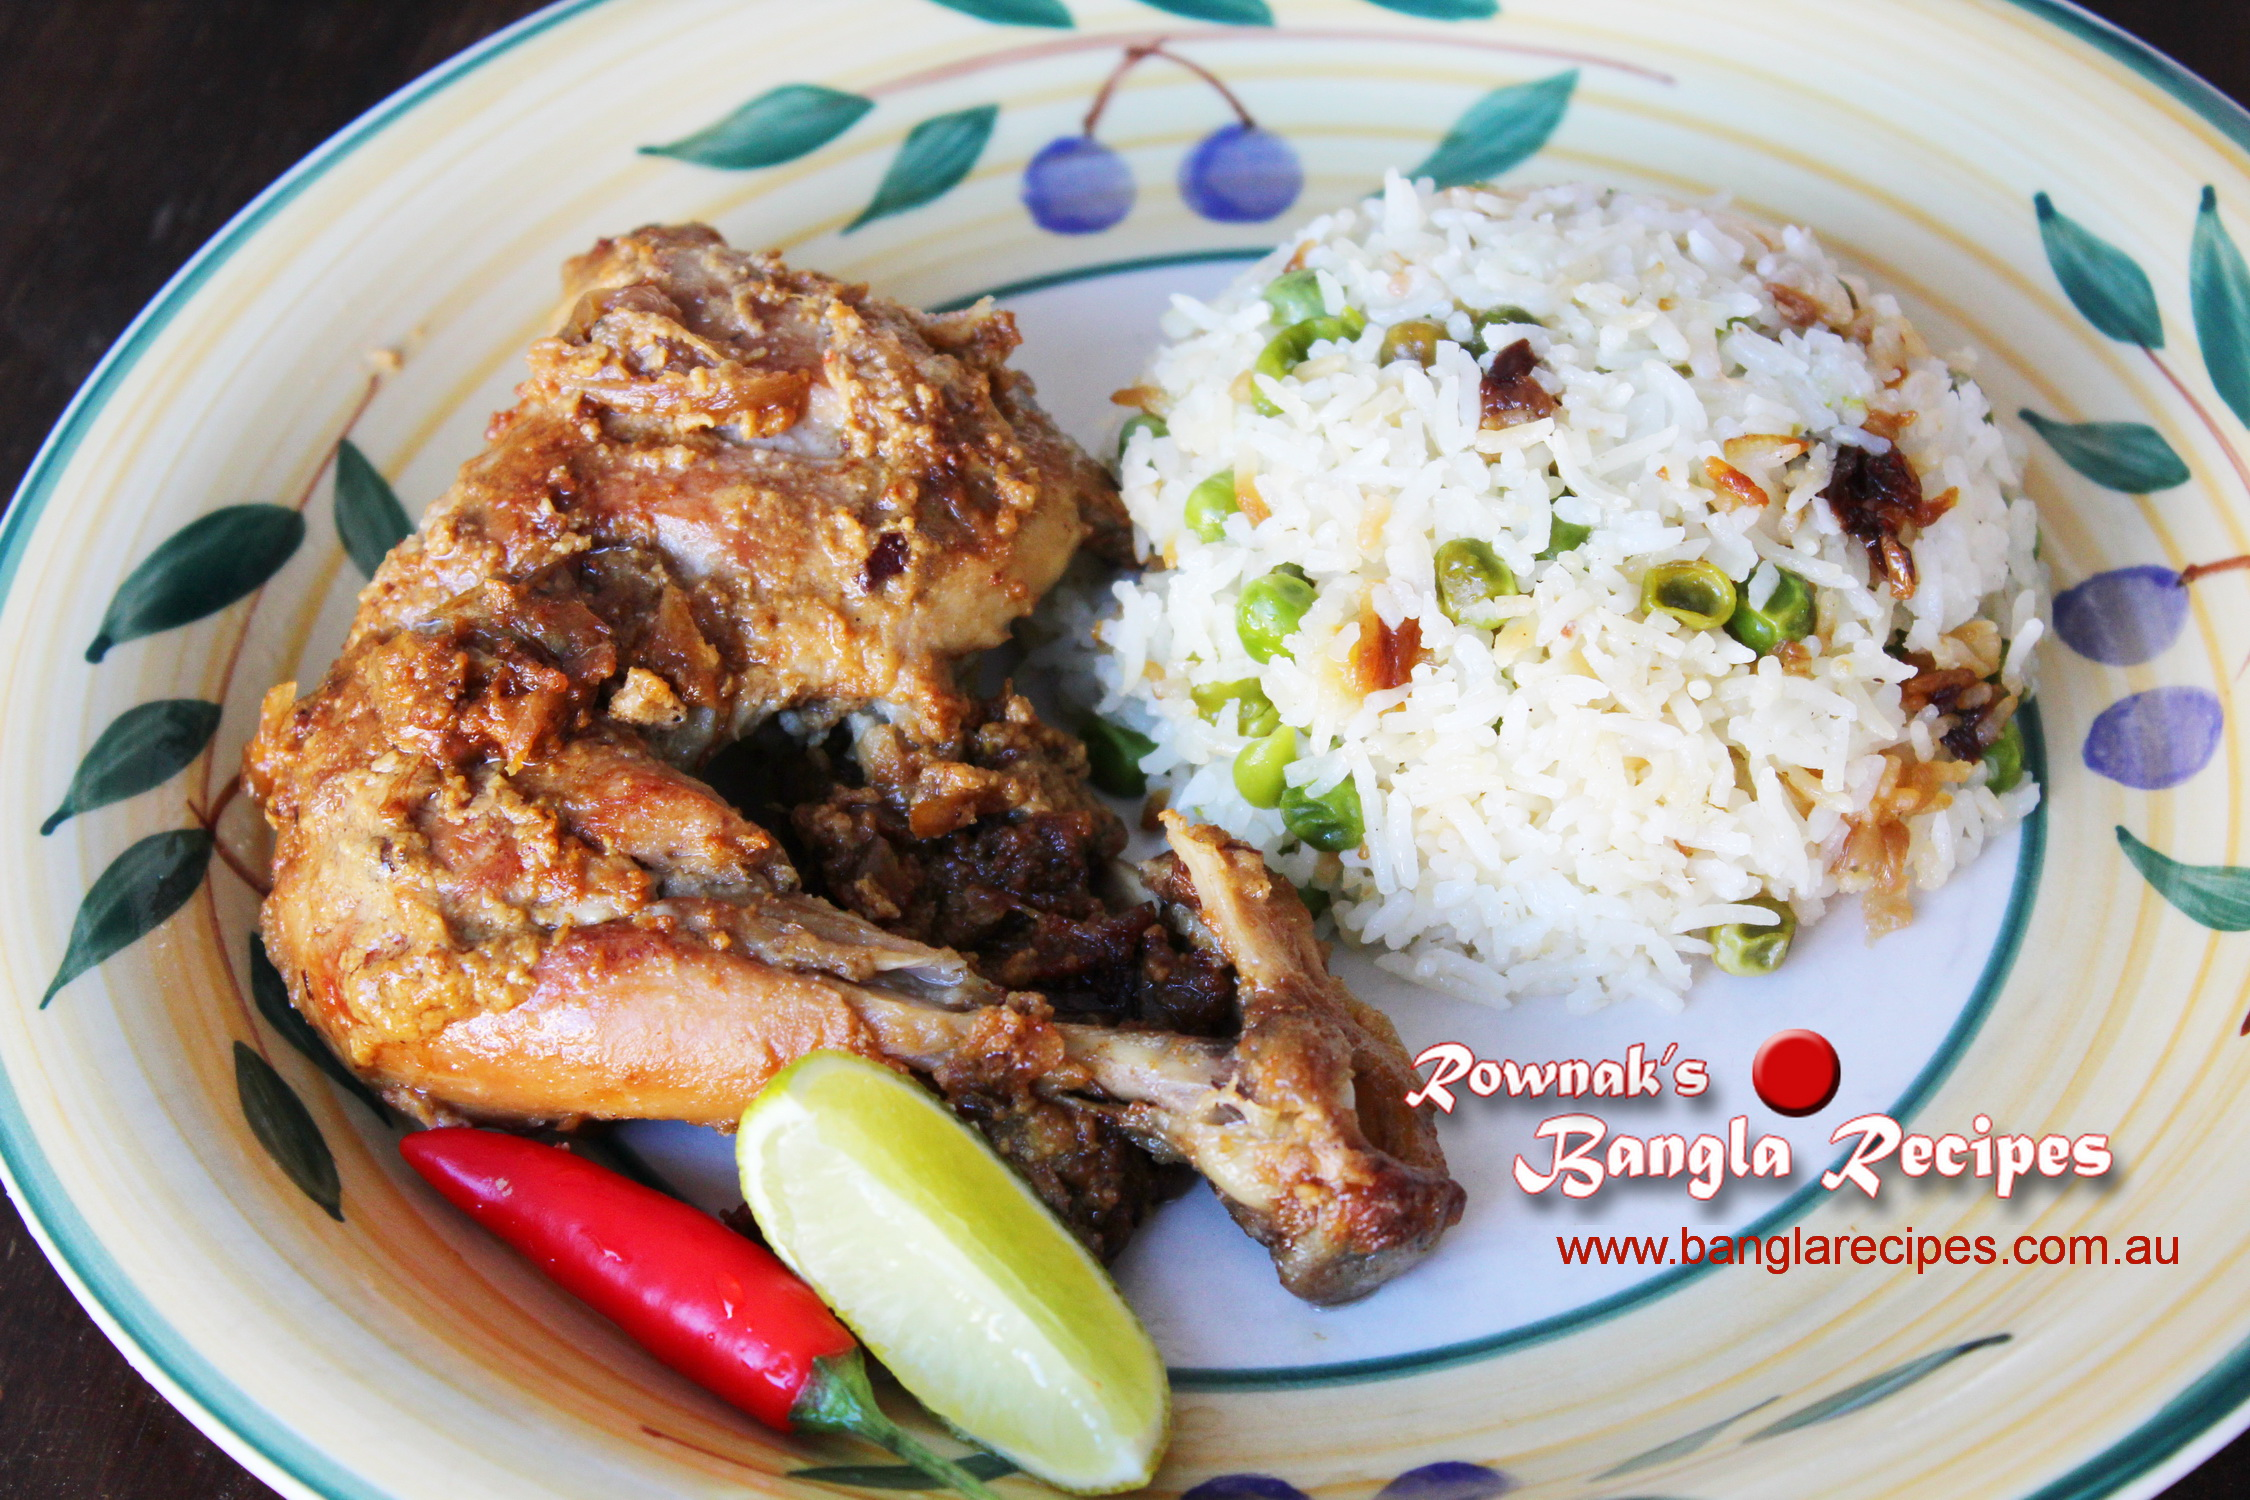 Murgir roast chicken roast bangladeshi style banglarecipes murgir roast chicken roast bangladeshi style forumfinder Image collections